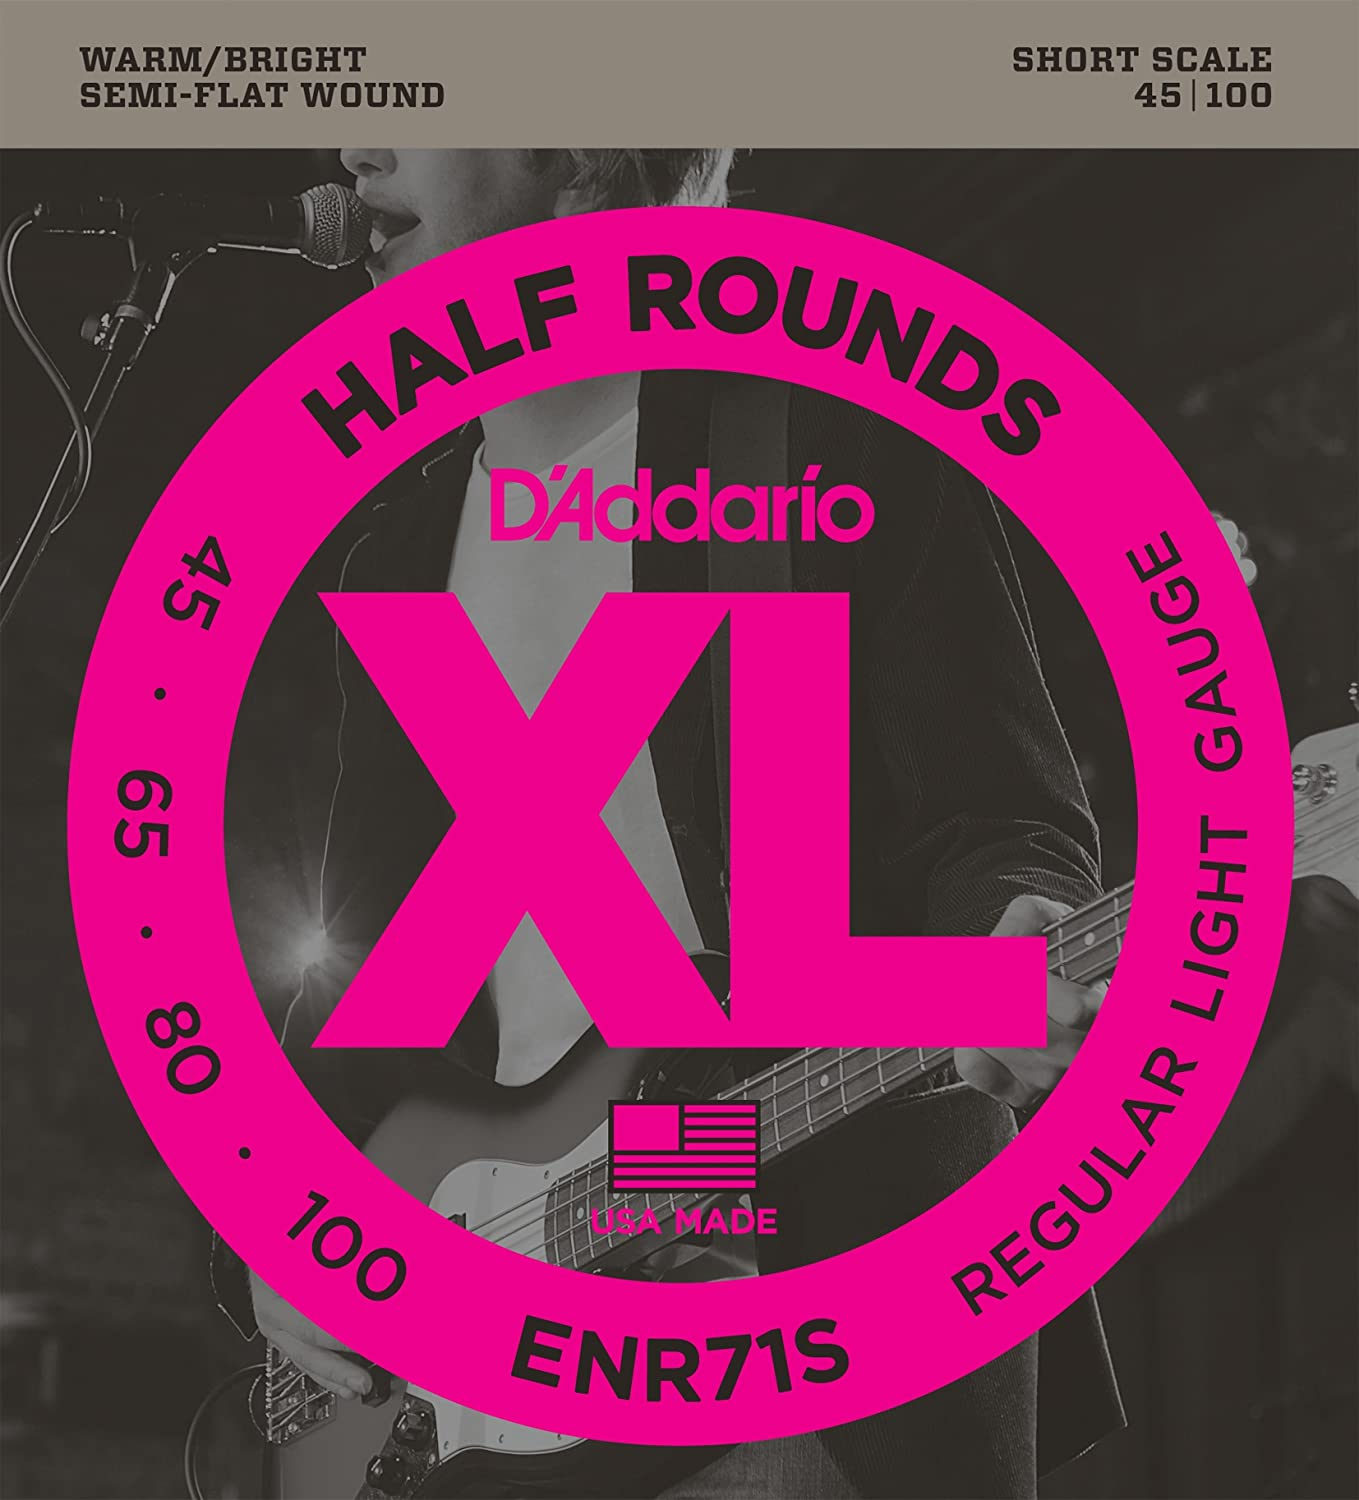 D'Addario ENR71S Half Round Bass Guitar Strings, Regular Light, 45-100, Short Scale D'Addario &Co. Inc